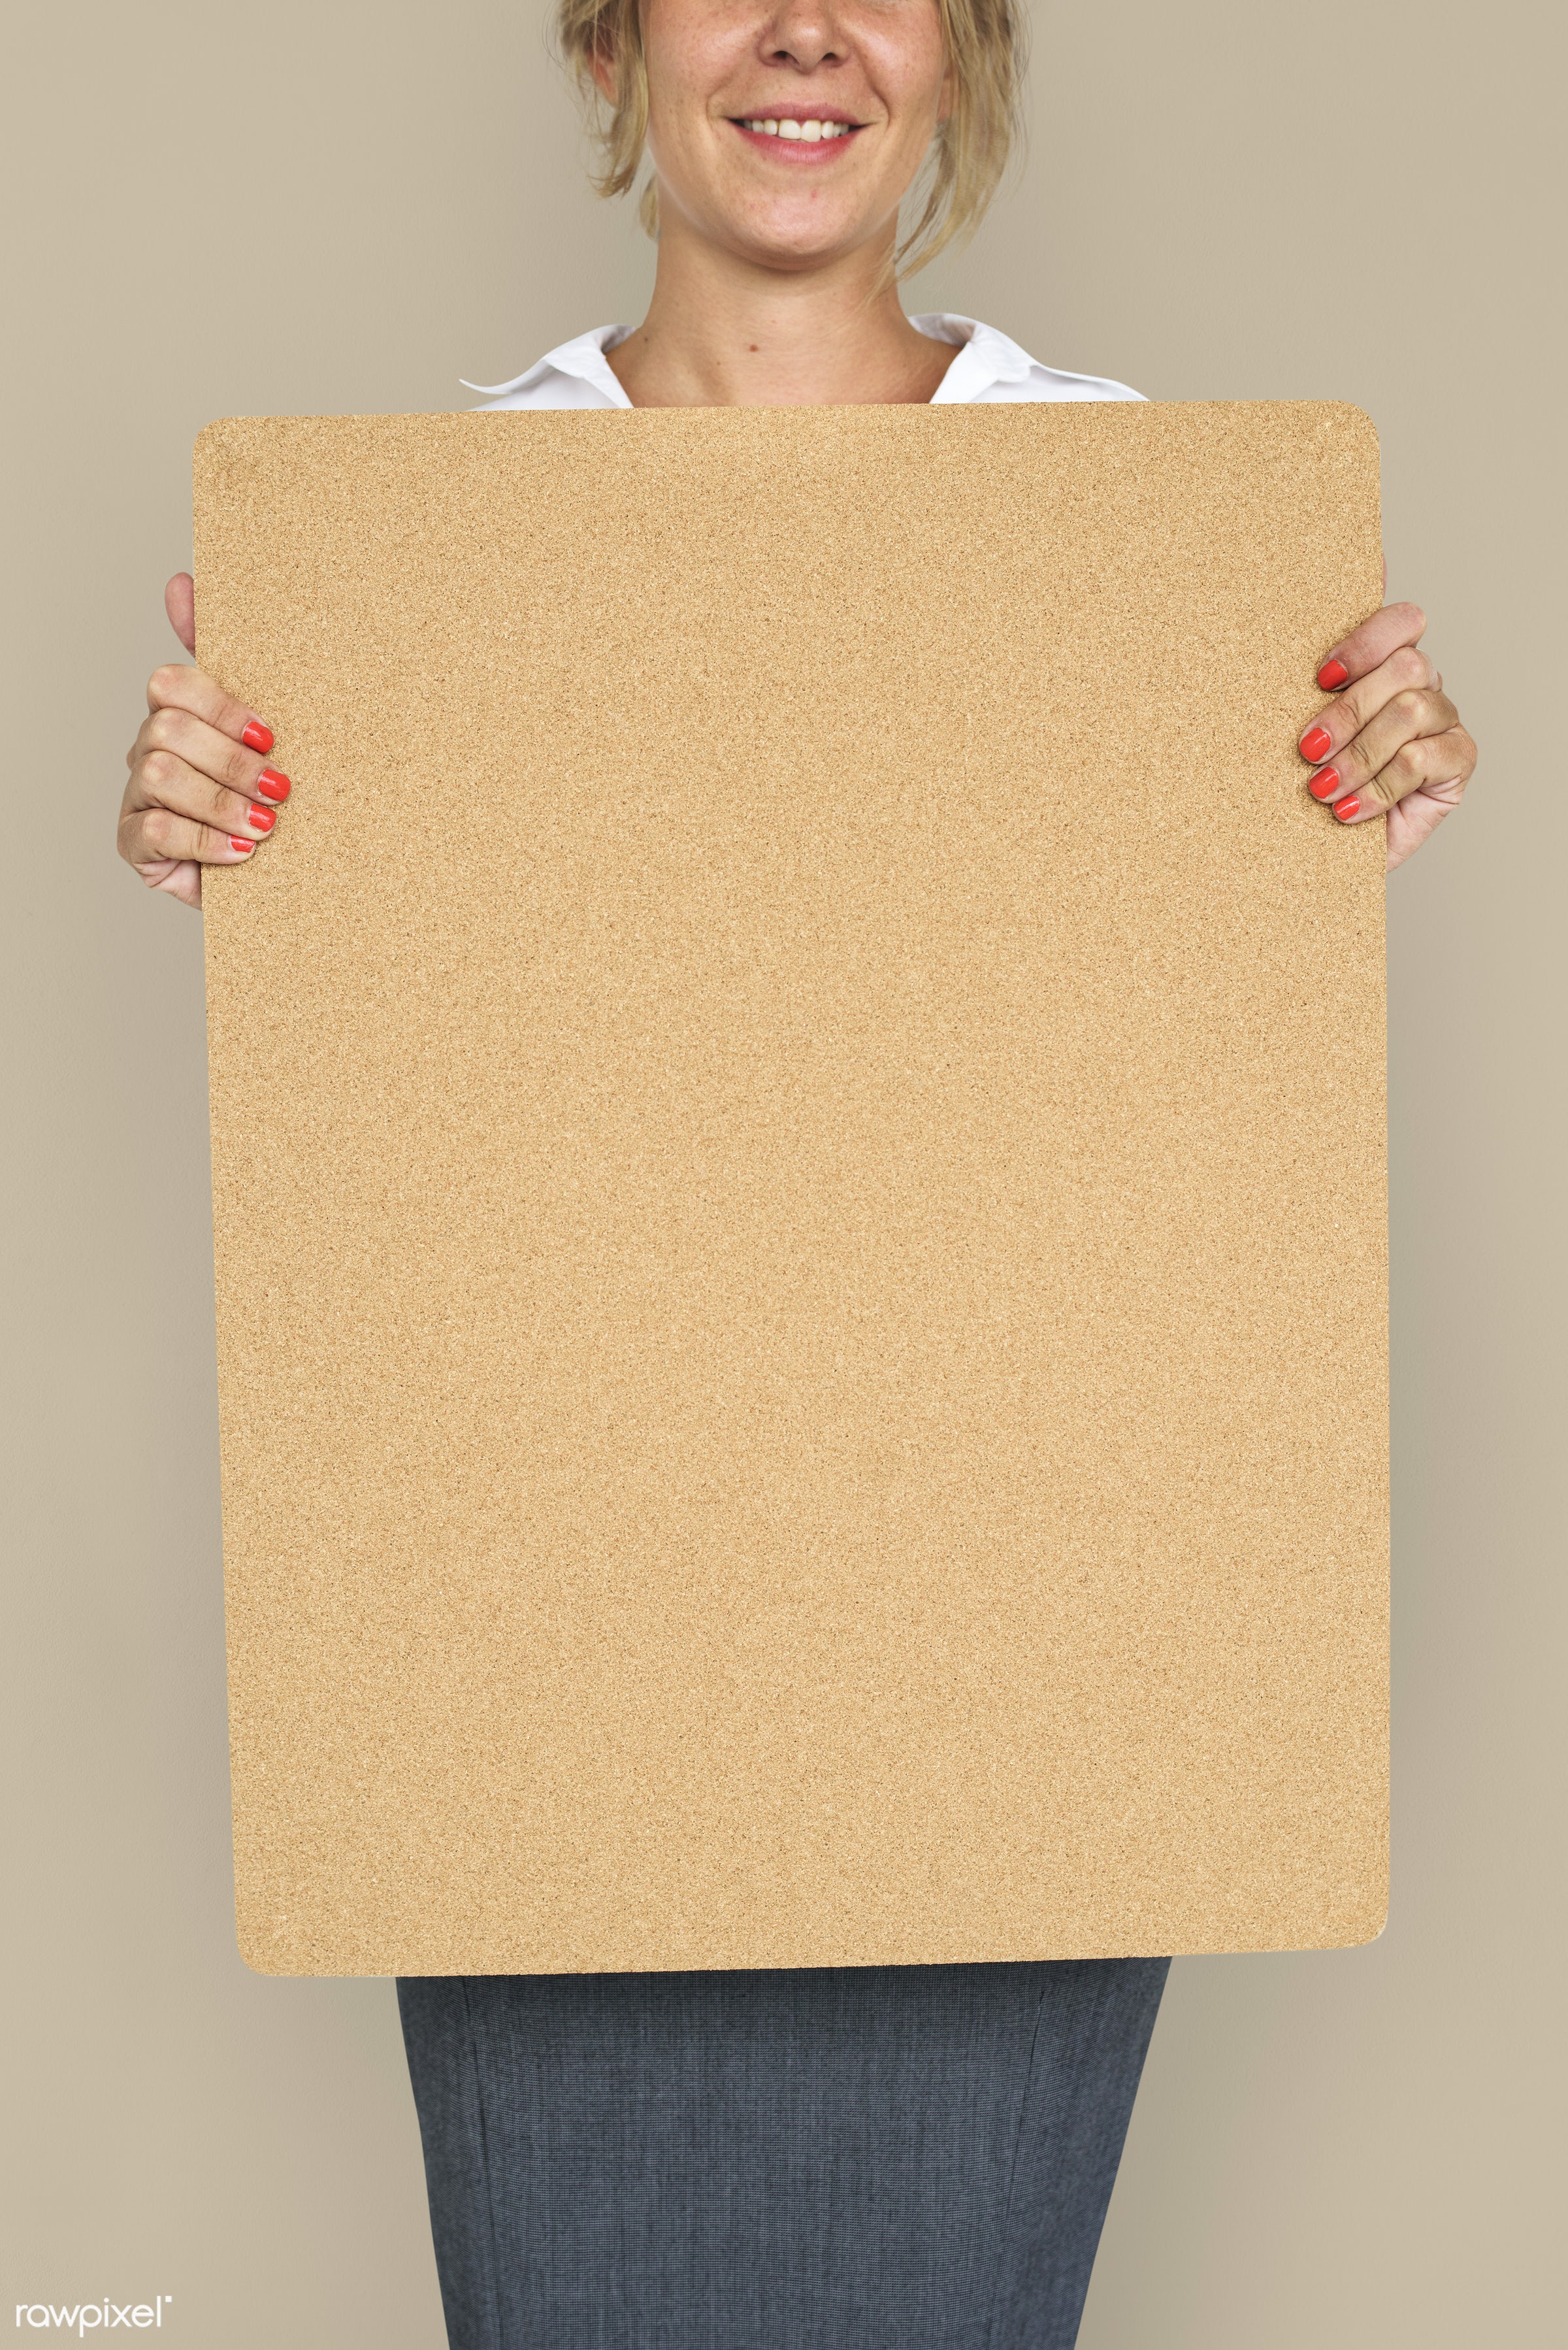 studio, expression, person, holding, courage, people, placard, woman, smile, cheerful, smiling, isolated, businesswoman,...